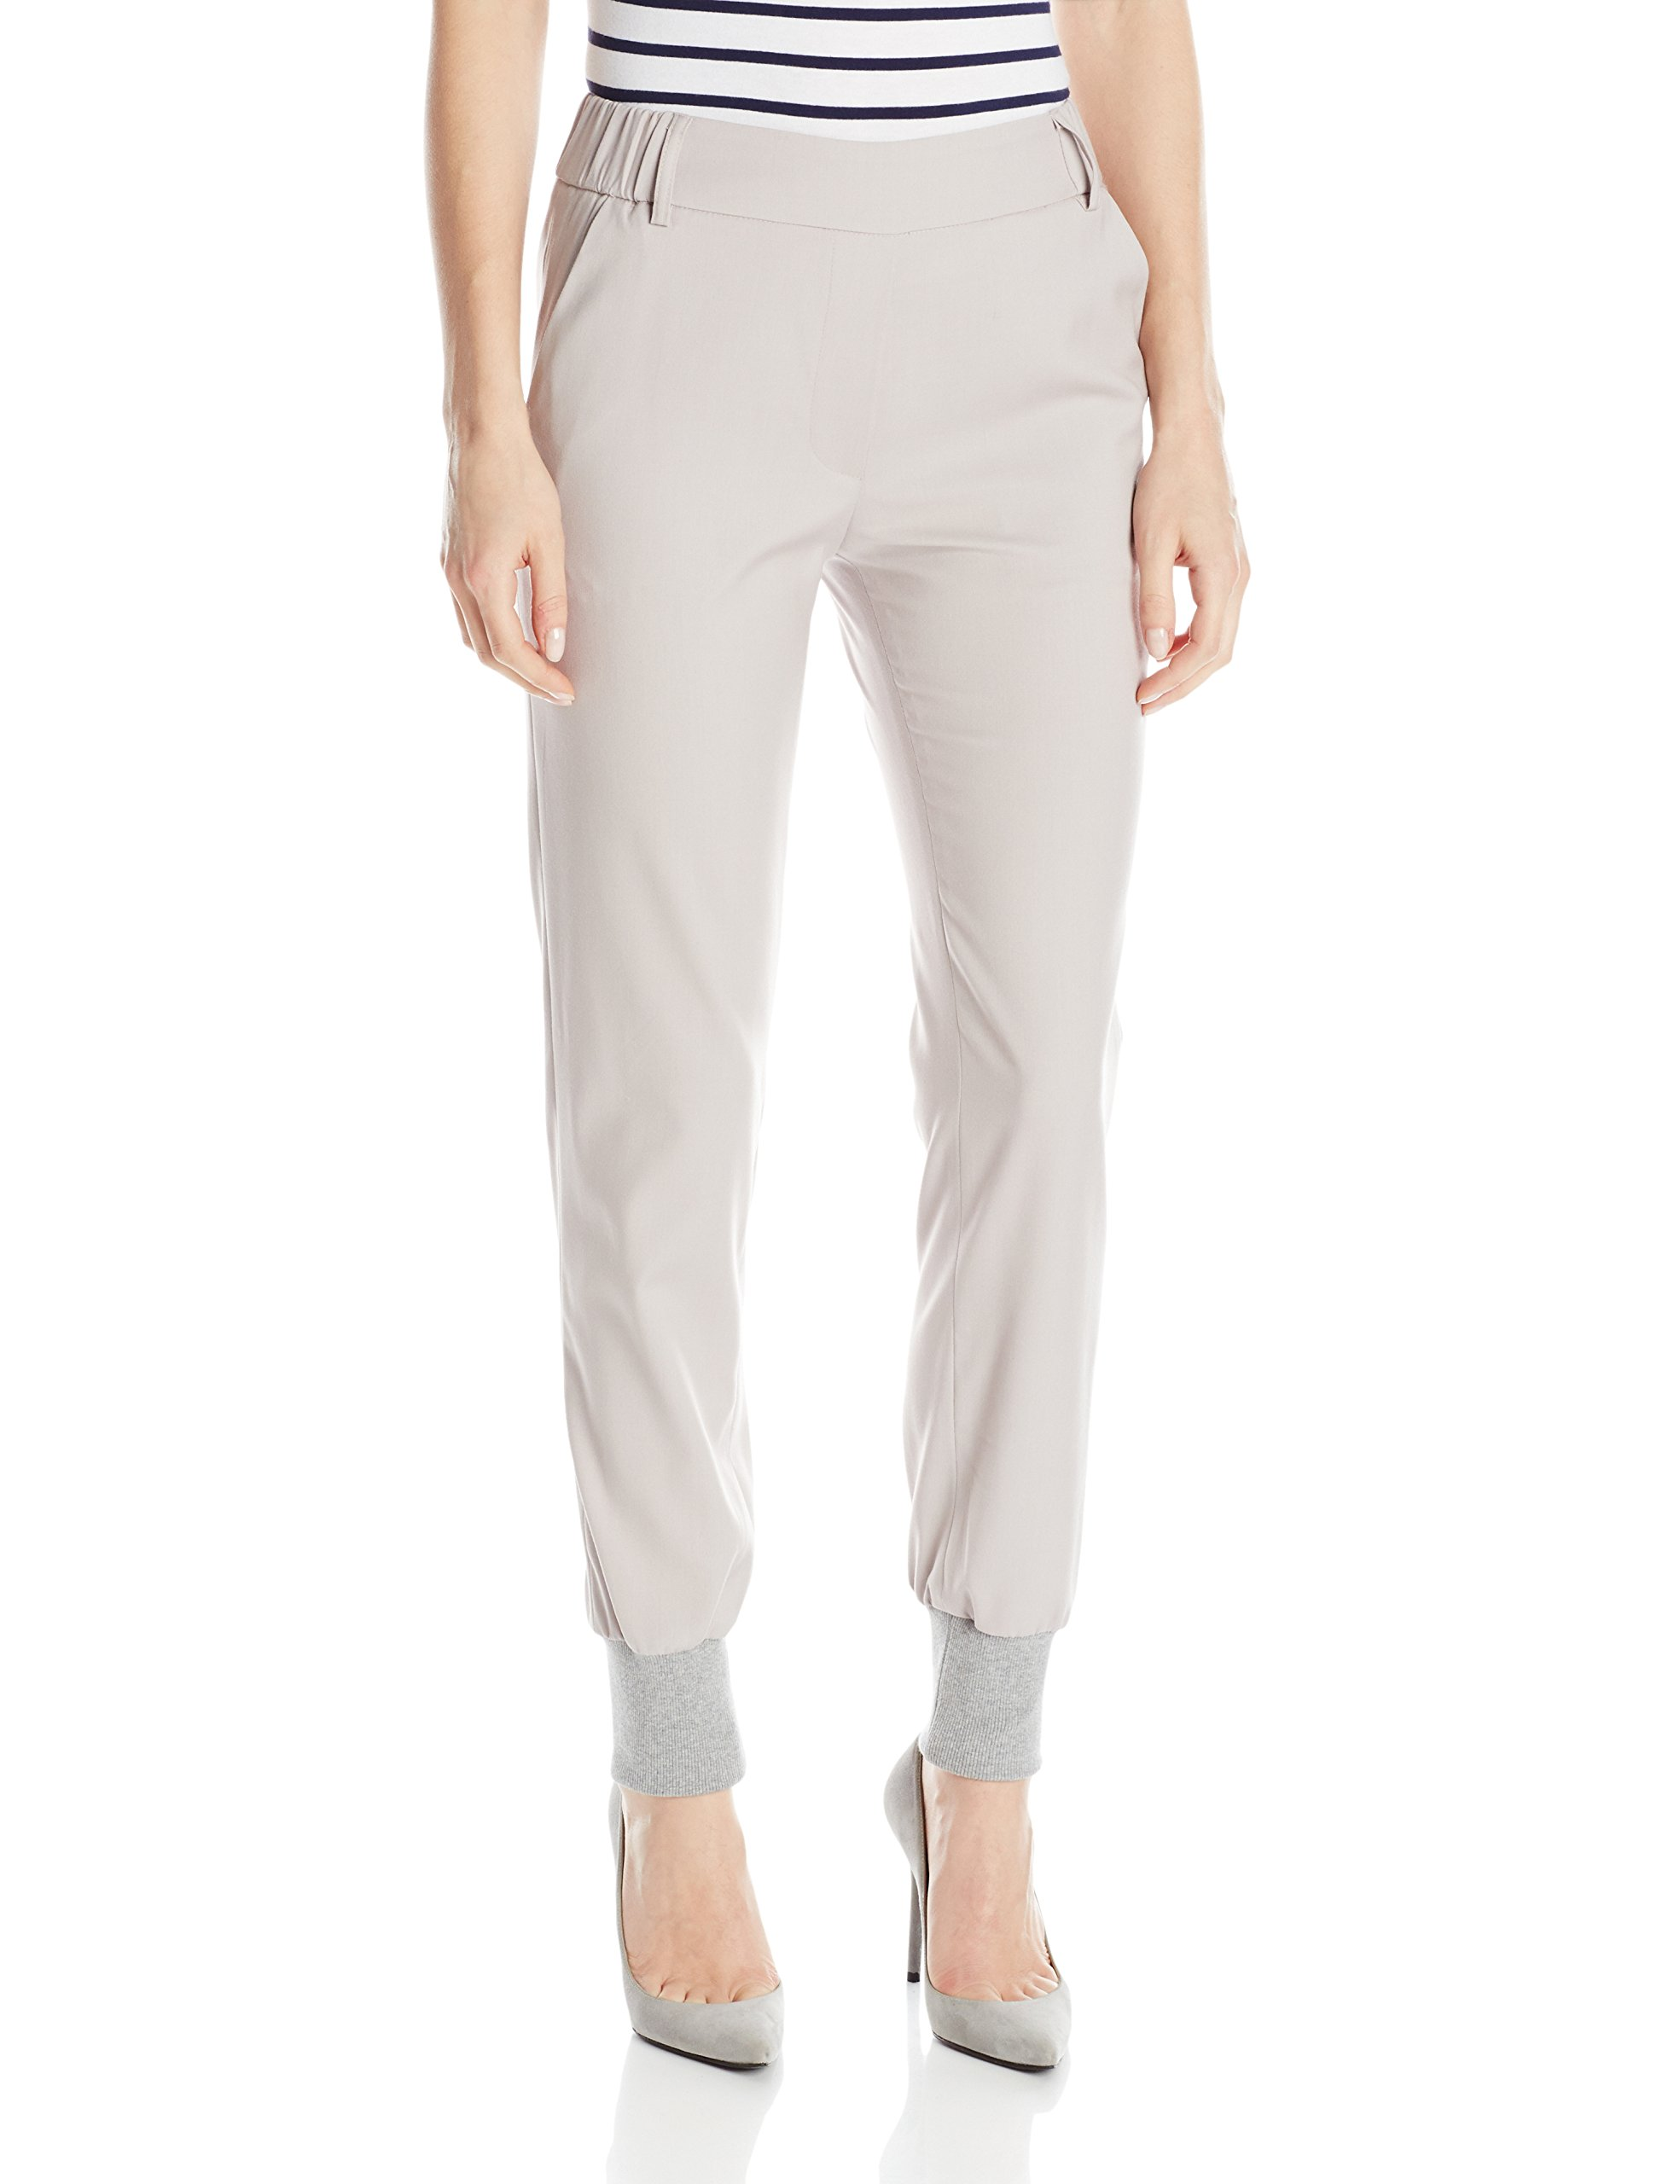 James Jeans Women's Track Elastic Waist Pull On Pant, Silky Warm Grey, 26